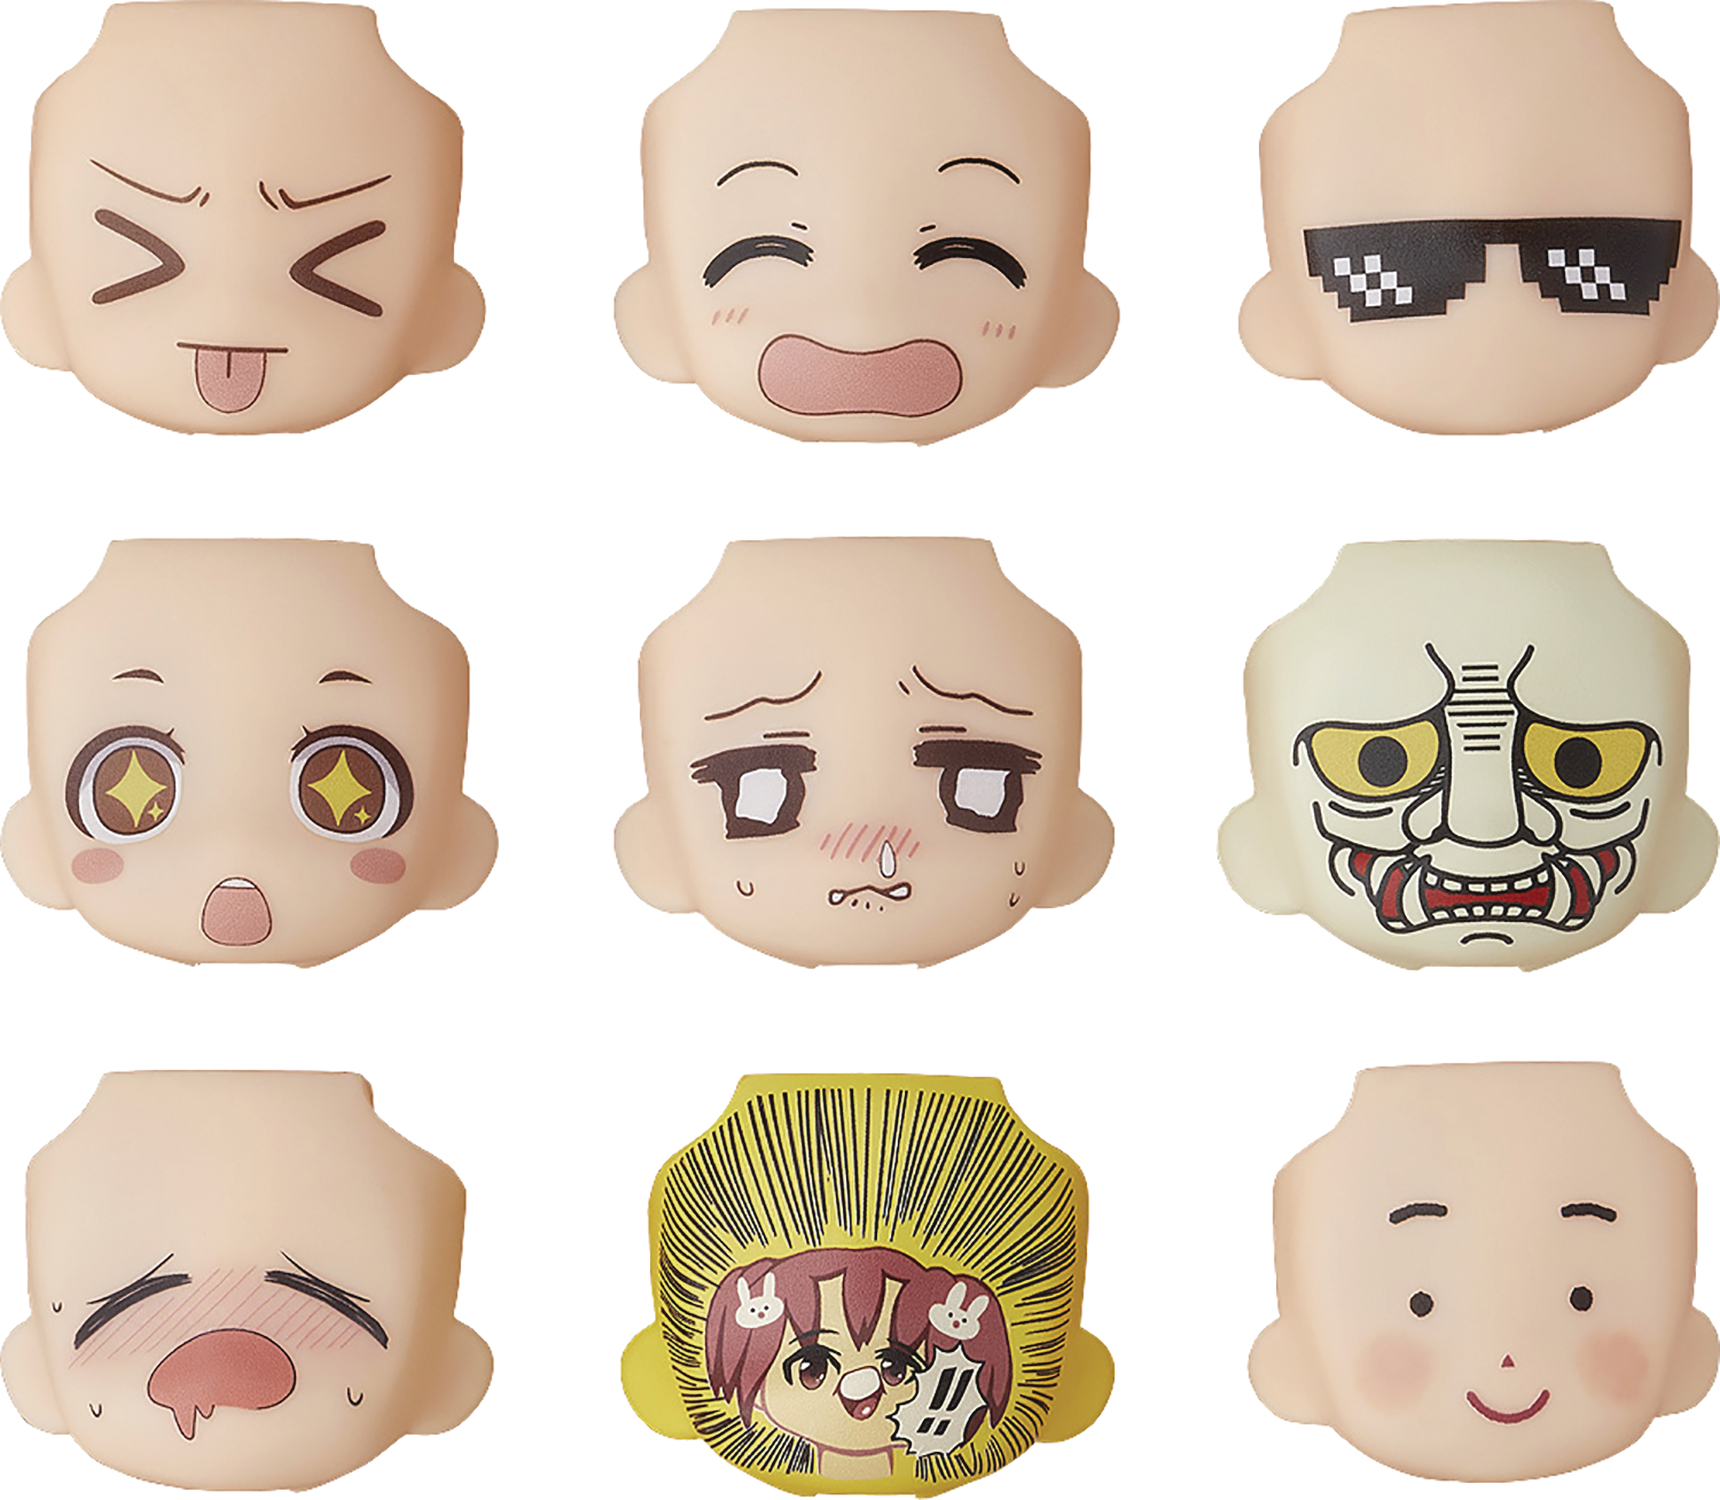 NENDOROID MORE FACE SWAP 03 9PC BMB DS